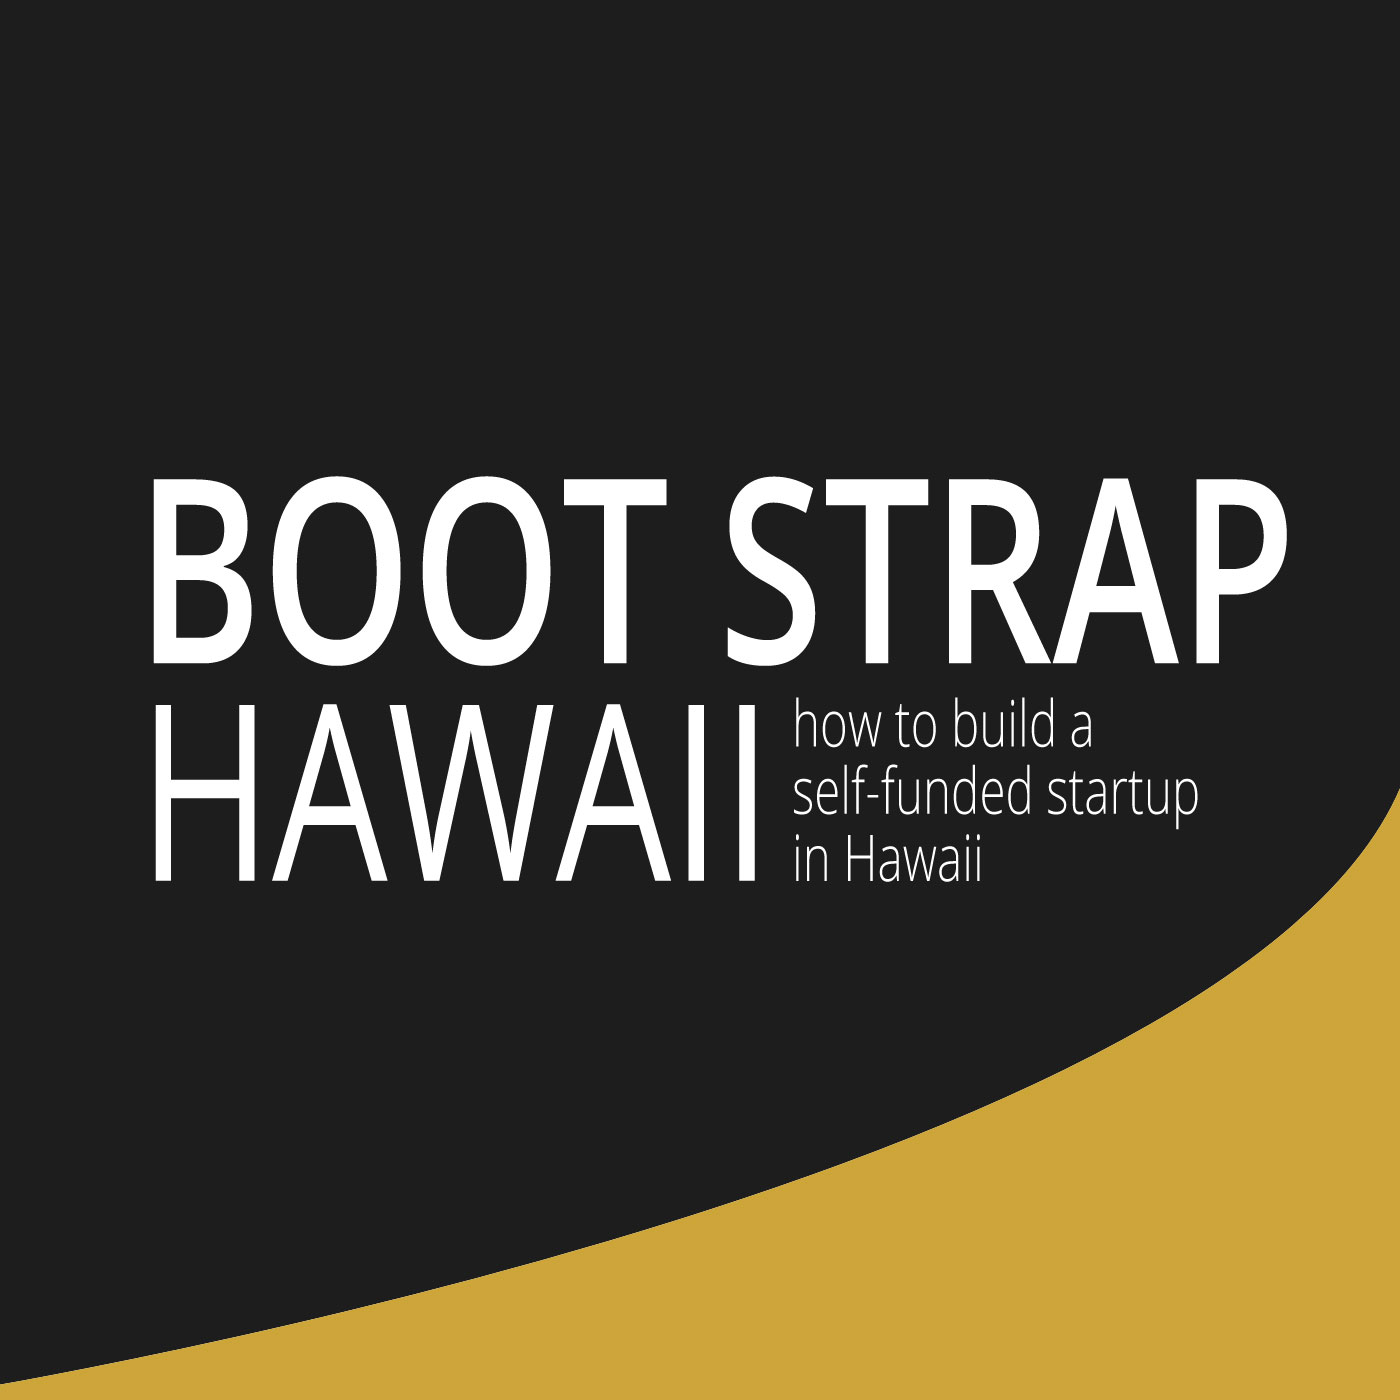 Bootstrap Hawaii